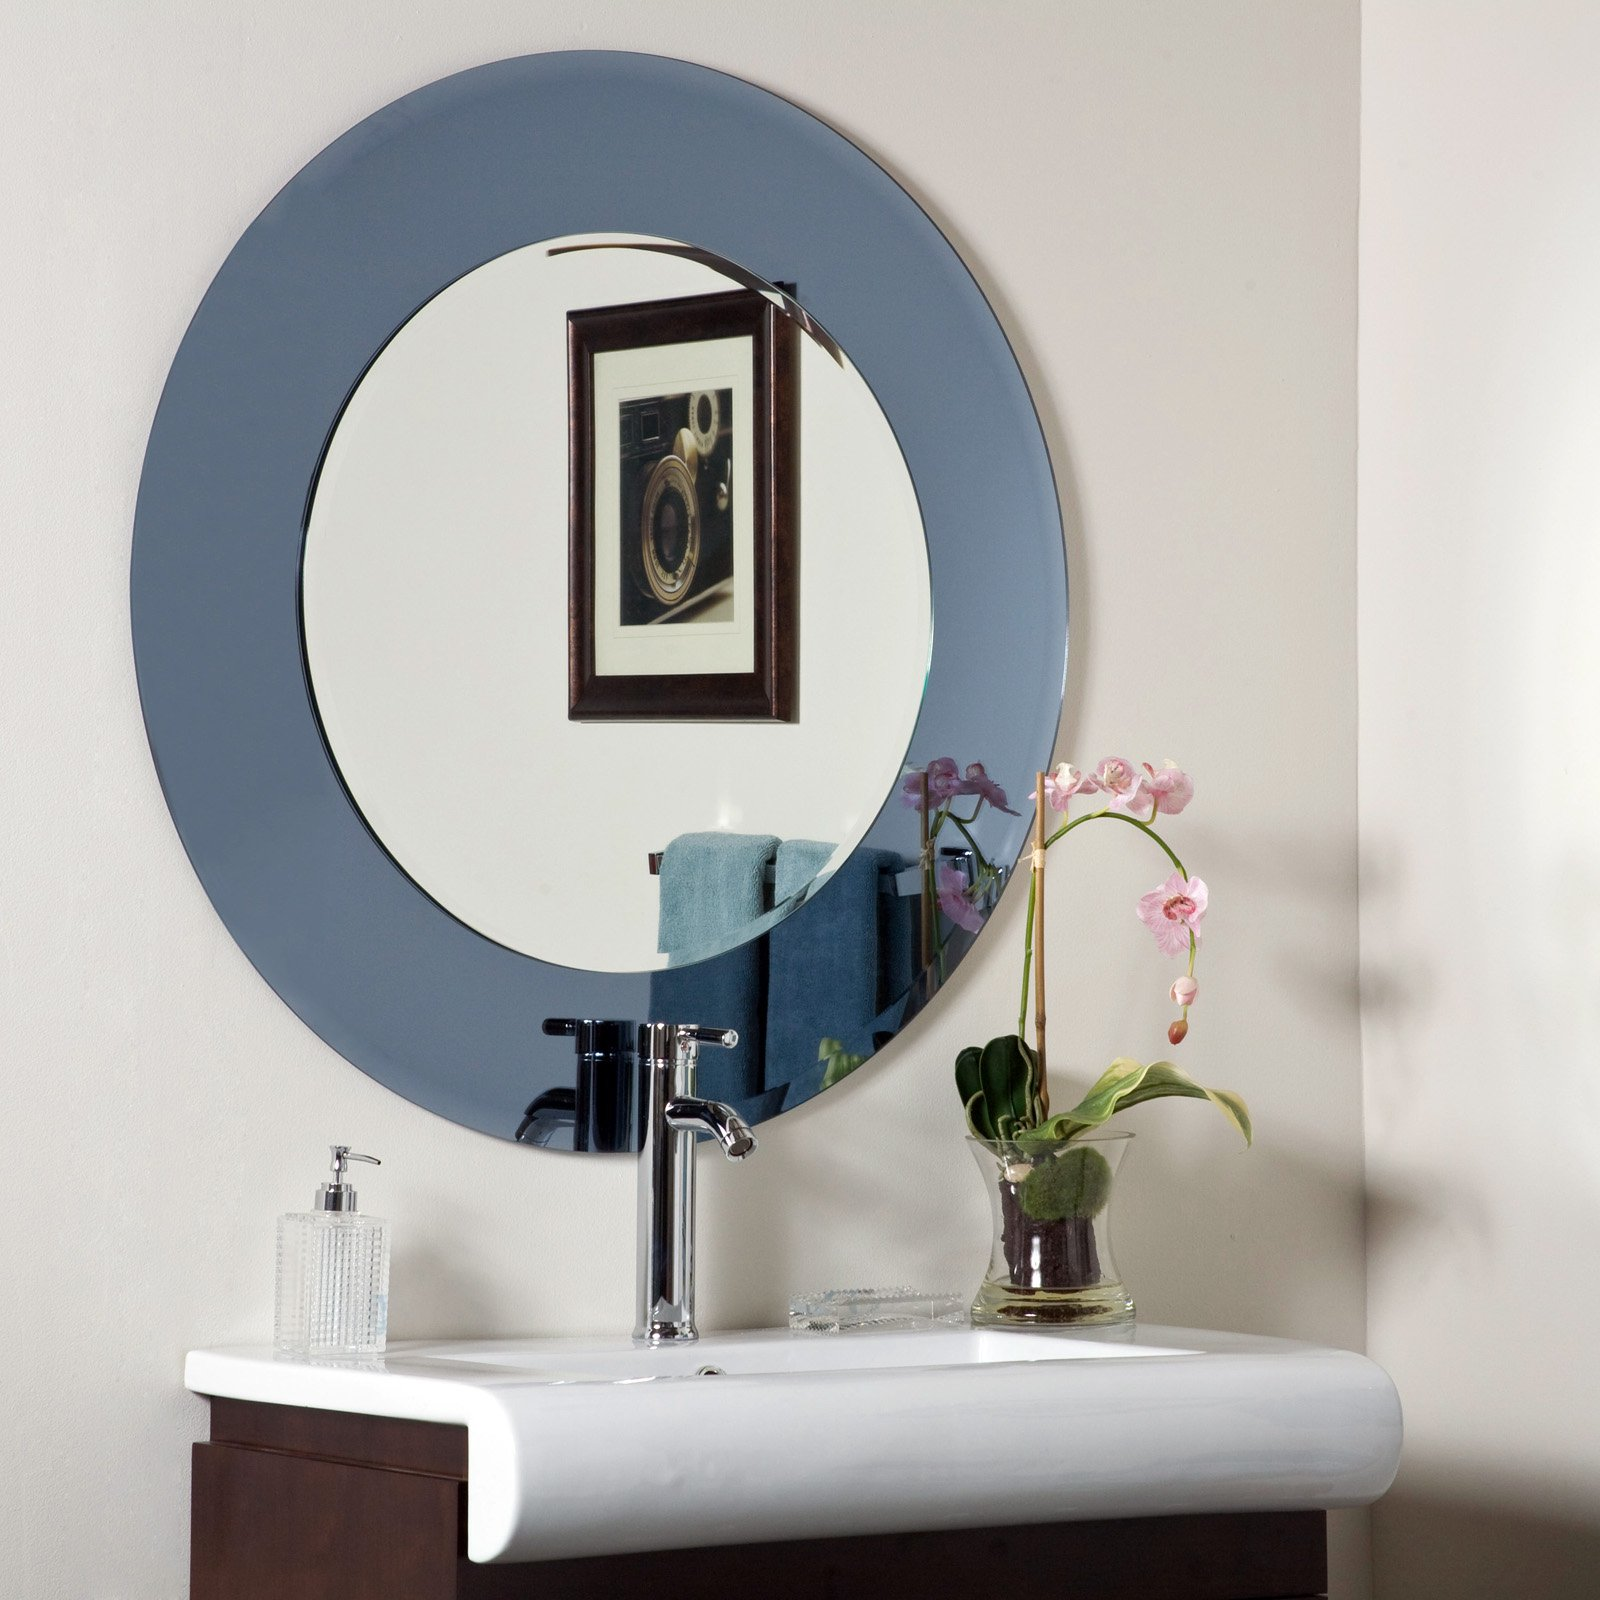 Décor Wonderland Camilla Modern Frameless Bathroom Mirror 35 diam. in. by Decor Wonderland of US